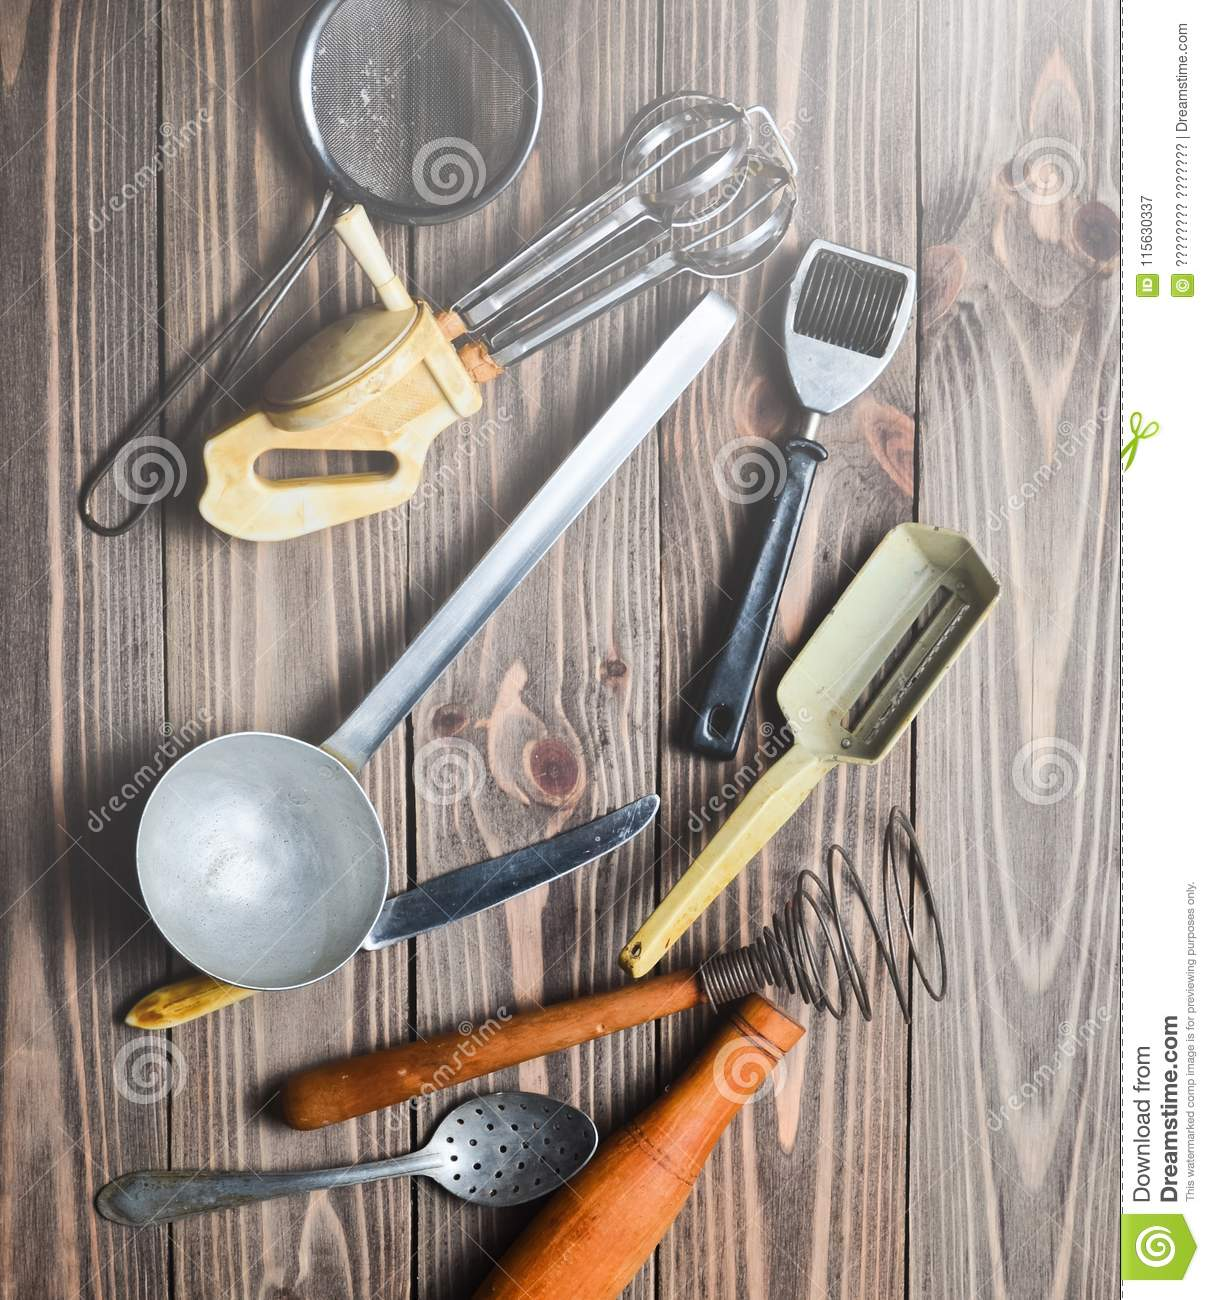 A Set Of Old Kitchen Tools And Cutlery On A Wooden Table Stock Image Image Of Decoration Brown 115630337